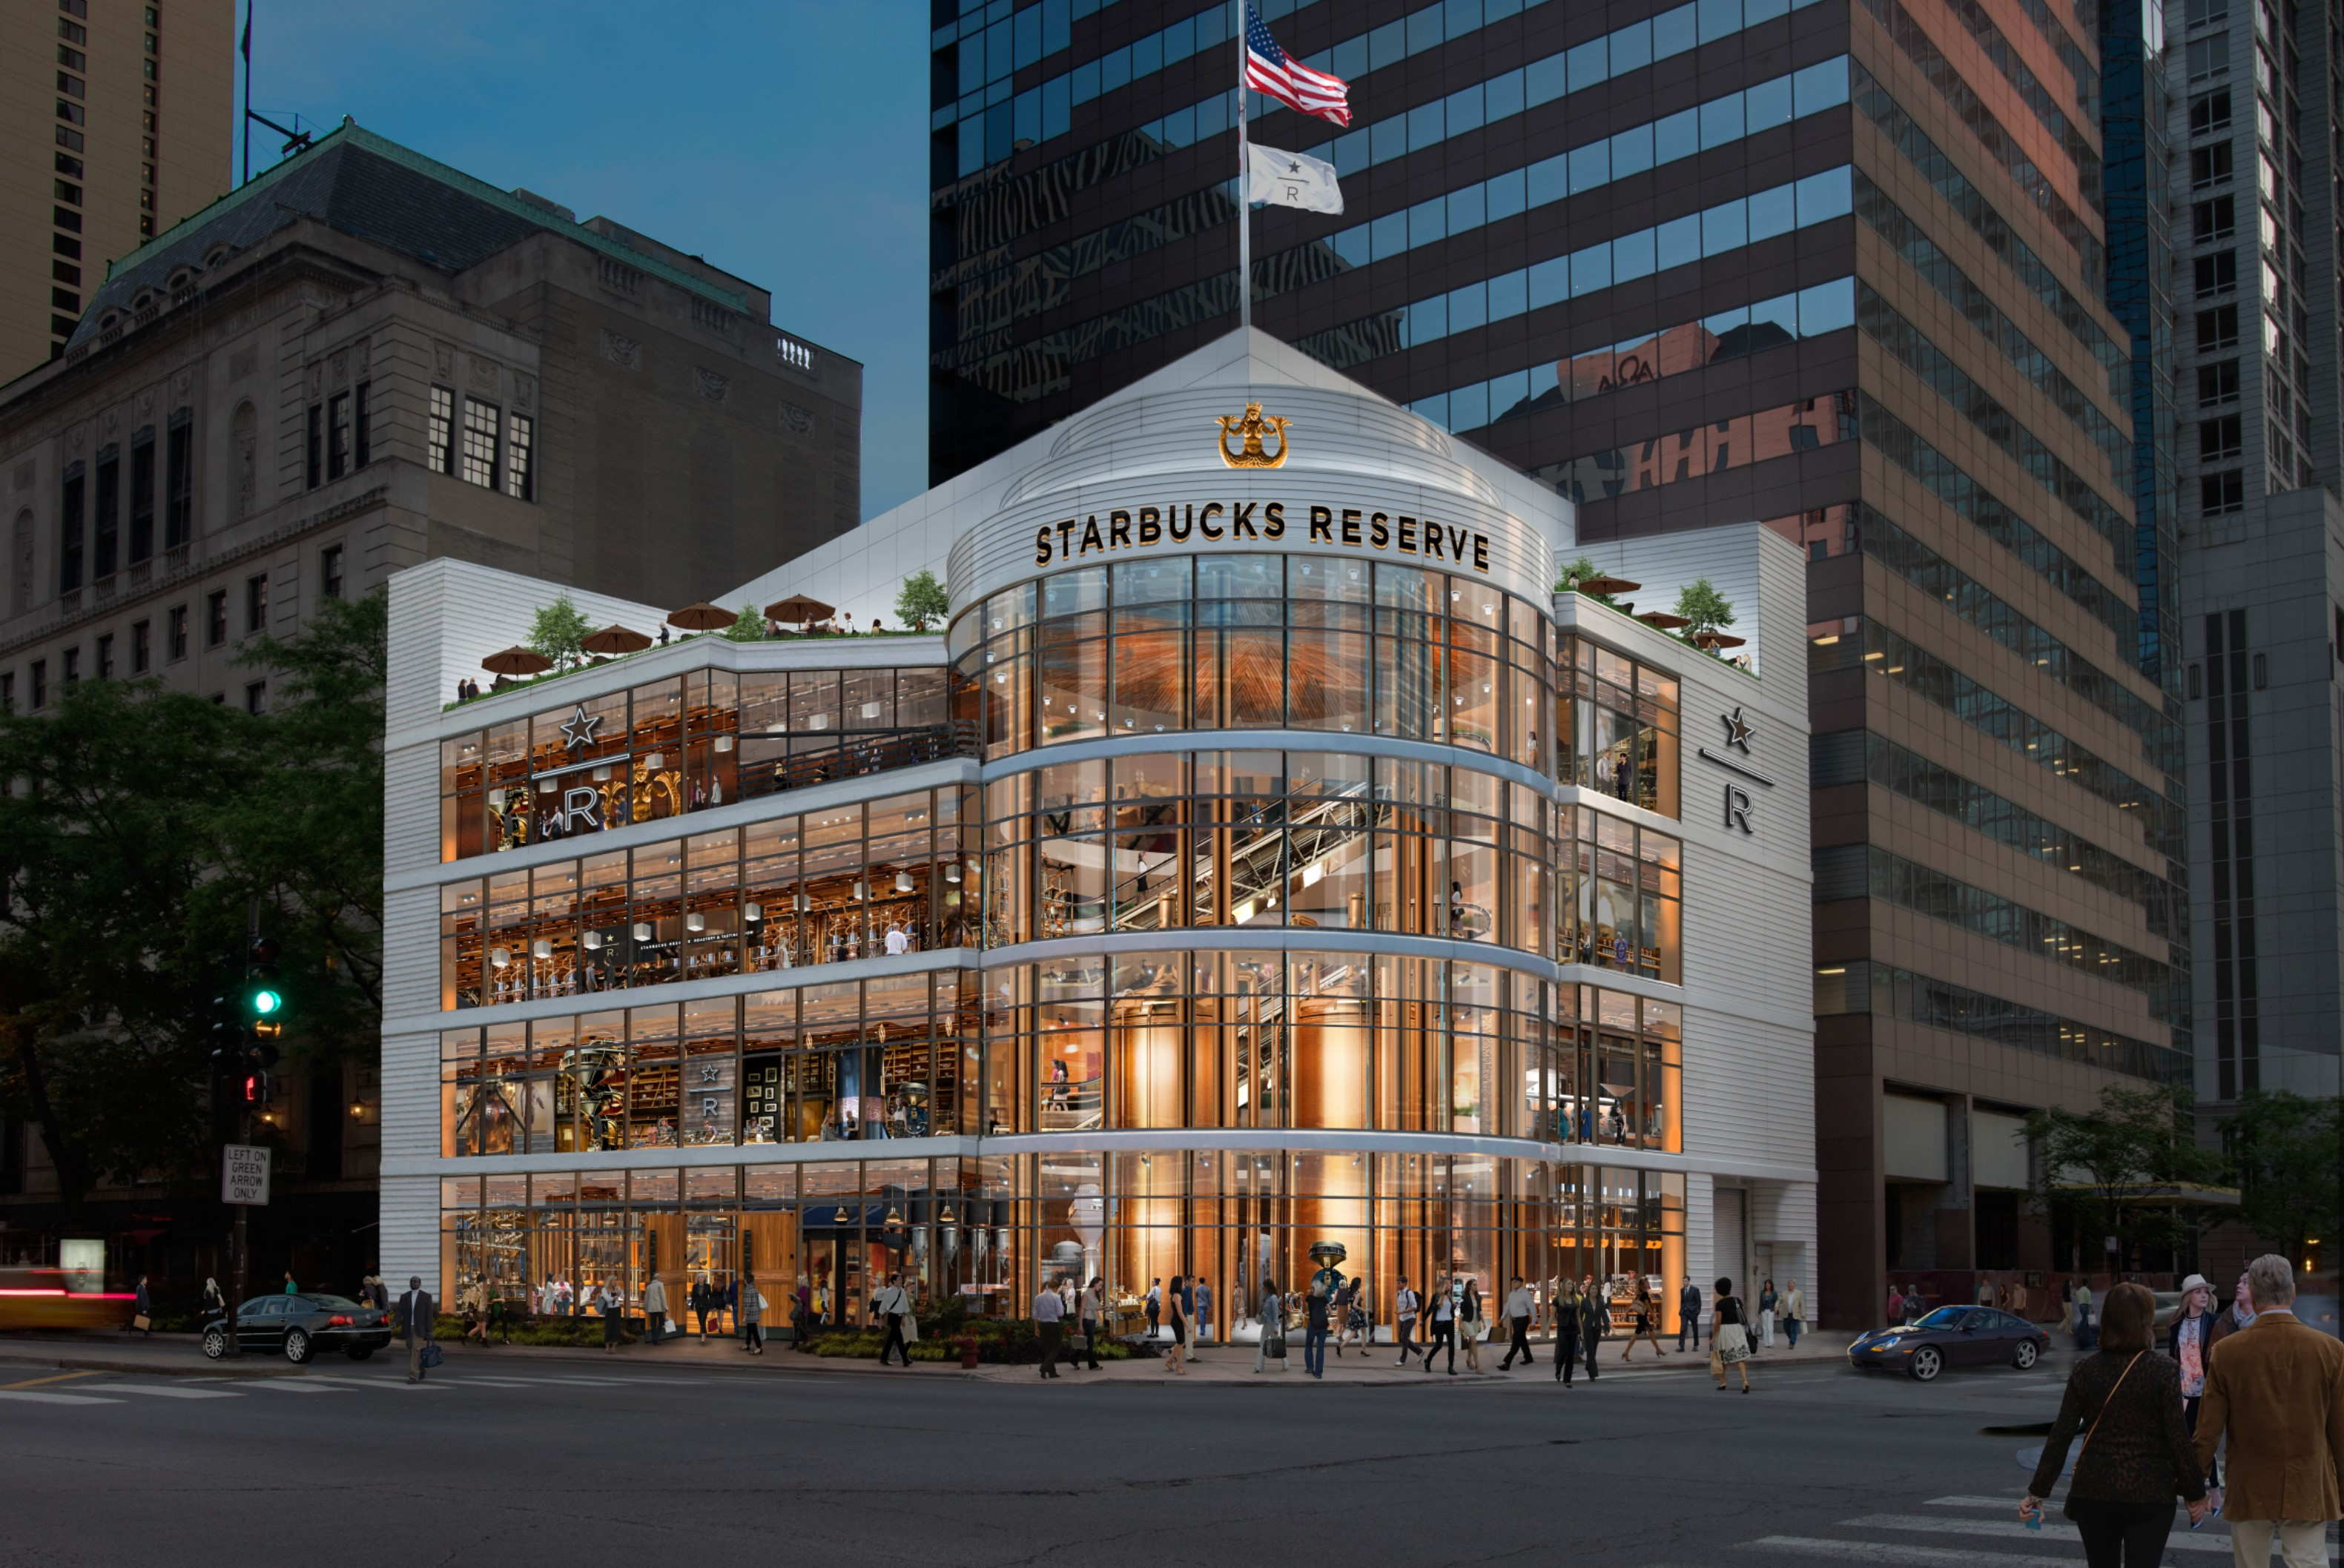 Starbucks said it will open a Starbucks Reserve Roastery in Chicago in 2019. It will be the third location in the U.S., joining a massive location in Seattle and one that is set to open in New York City in 2018.